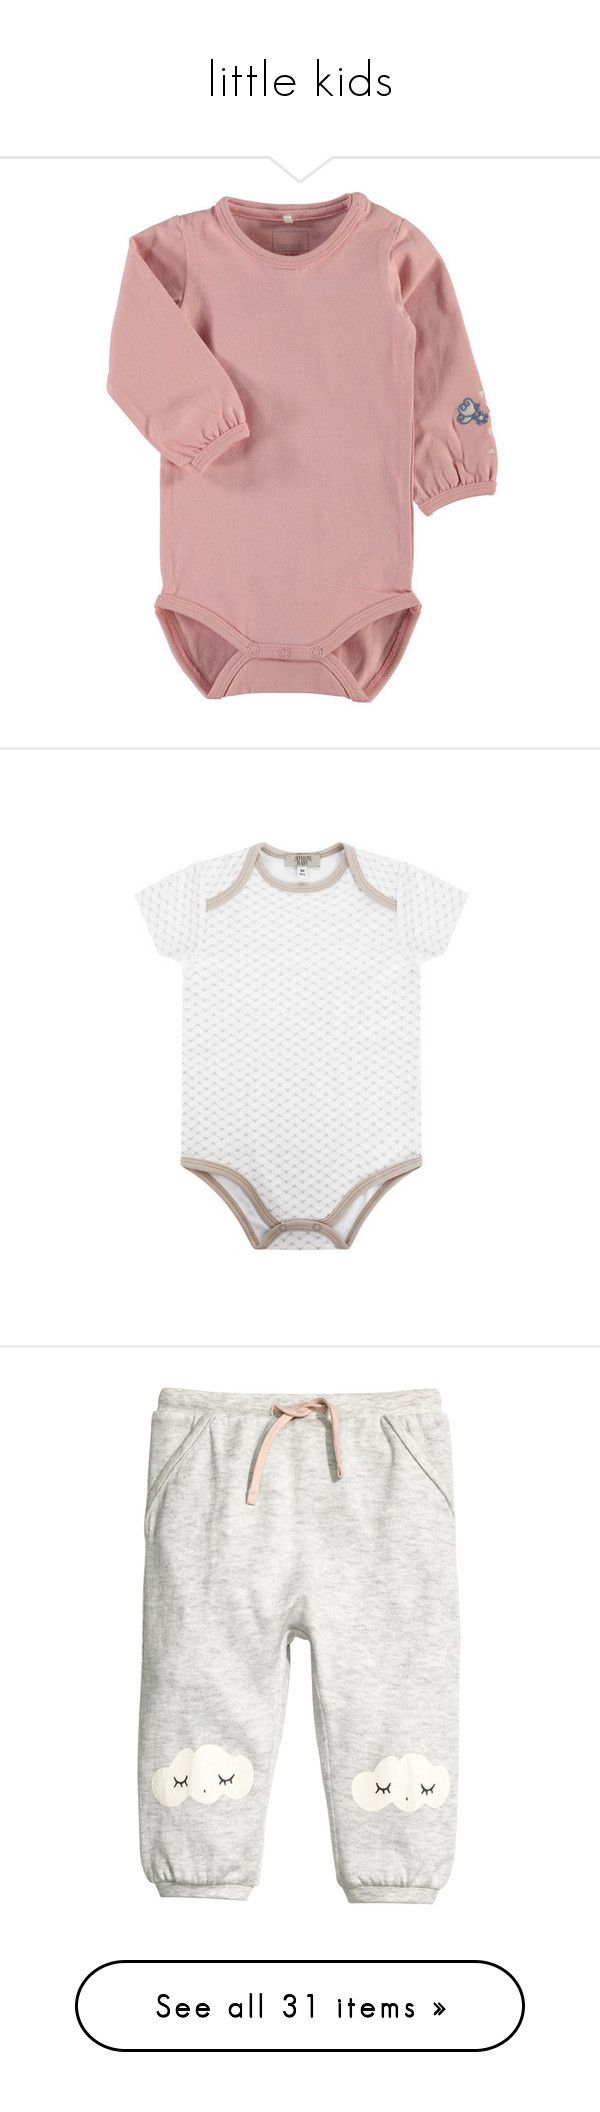 """""""little kids"""" by fashionbavyblue ❤ liked on Polyvore featuring pants, print pants, h&m pants, white pants, h&m trousers, white trousers, intimates, shapewear, leggings and elastic waistband pants"""